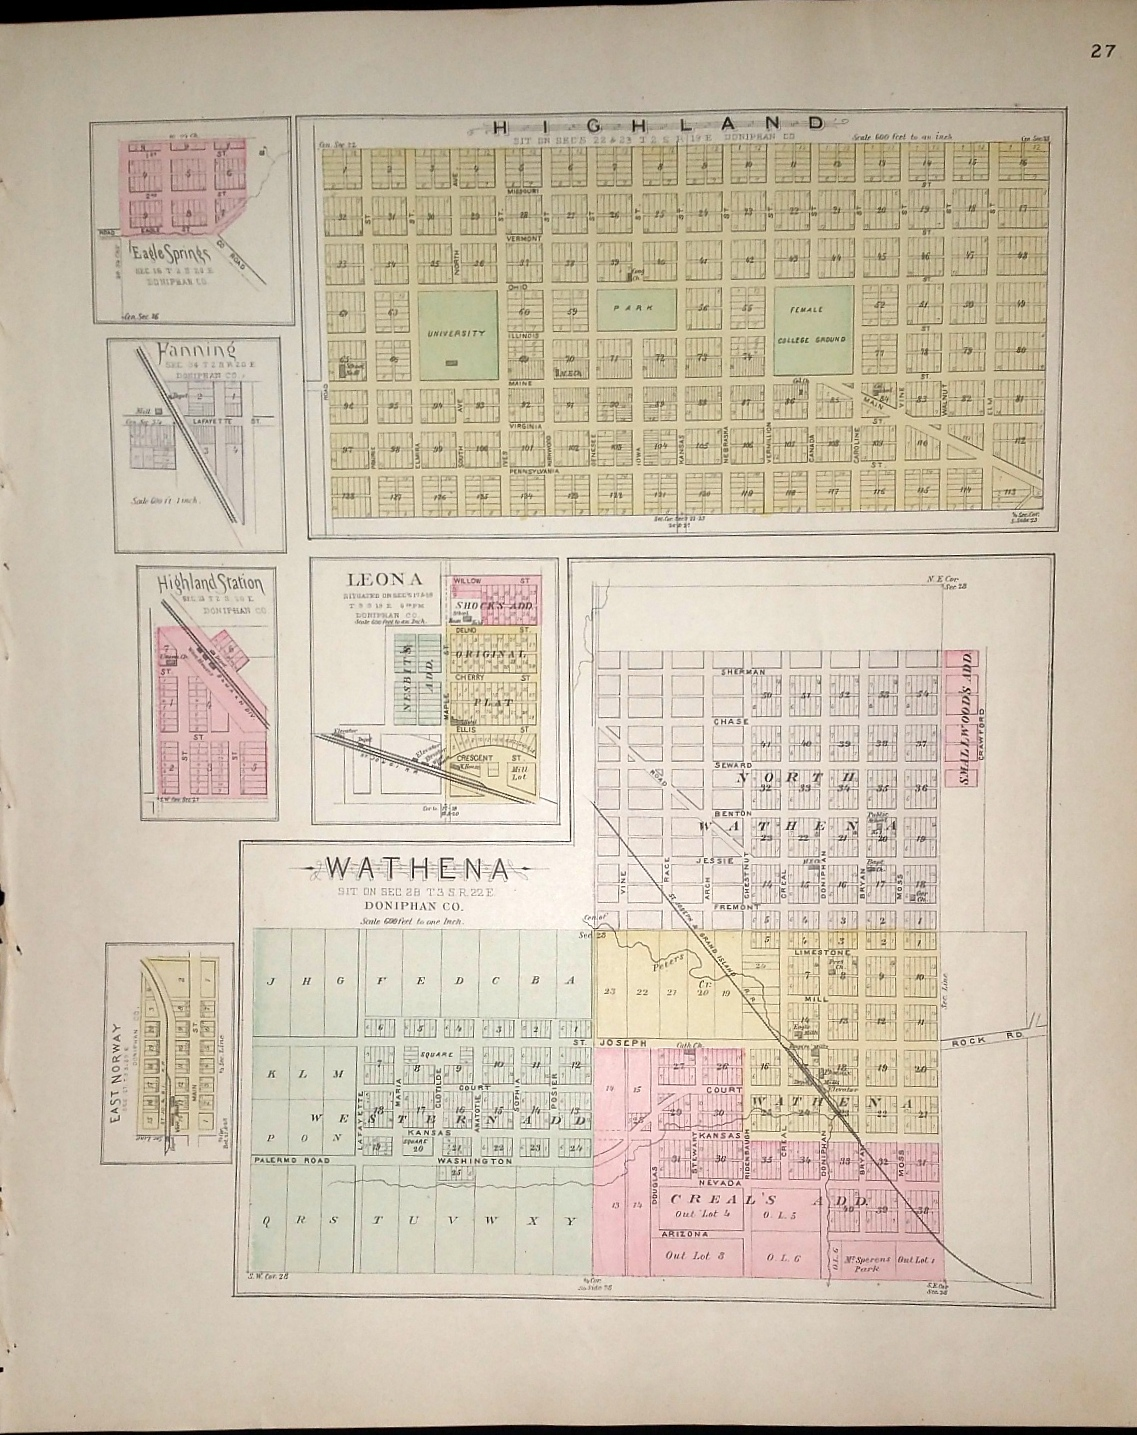 Image for [Map] Highland, Leona, Wathena, Eagle Springs, Hanning, Highland Station, & East Norway (of Doniphan County, Kansas) [backed with] Troy & Doniphan (of Doniphan Co.), Farmington, Parnell Sta., Huron, Cummings, Shannon, Larkin, & Monrovia (of Atchison Co.)